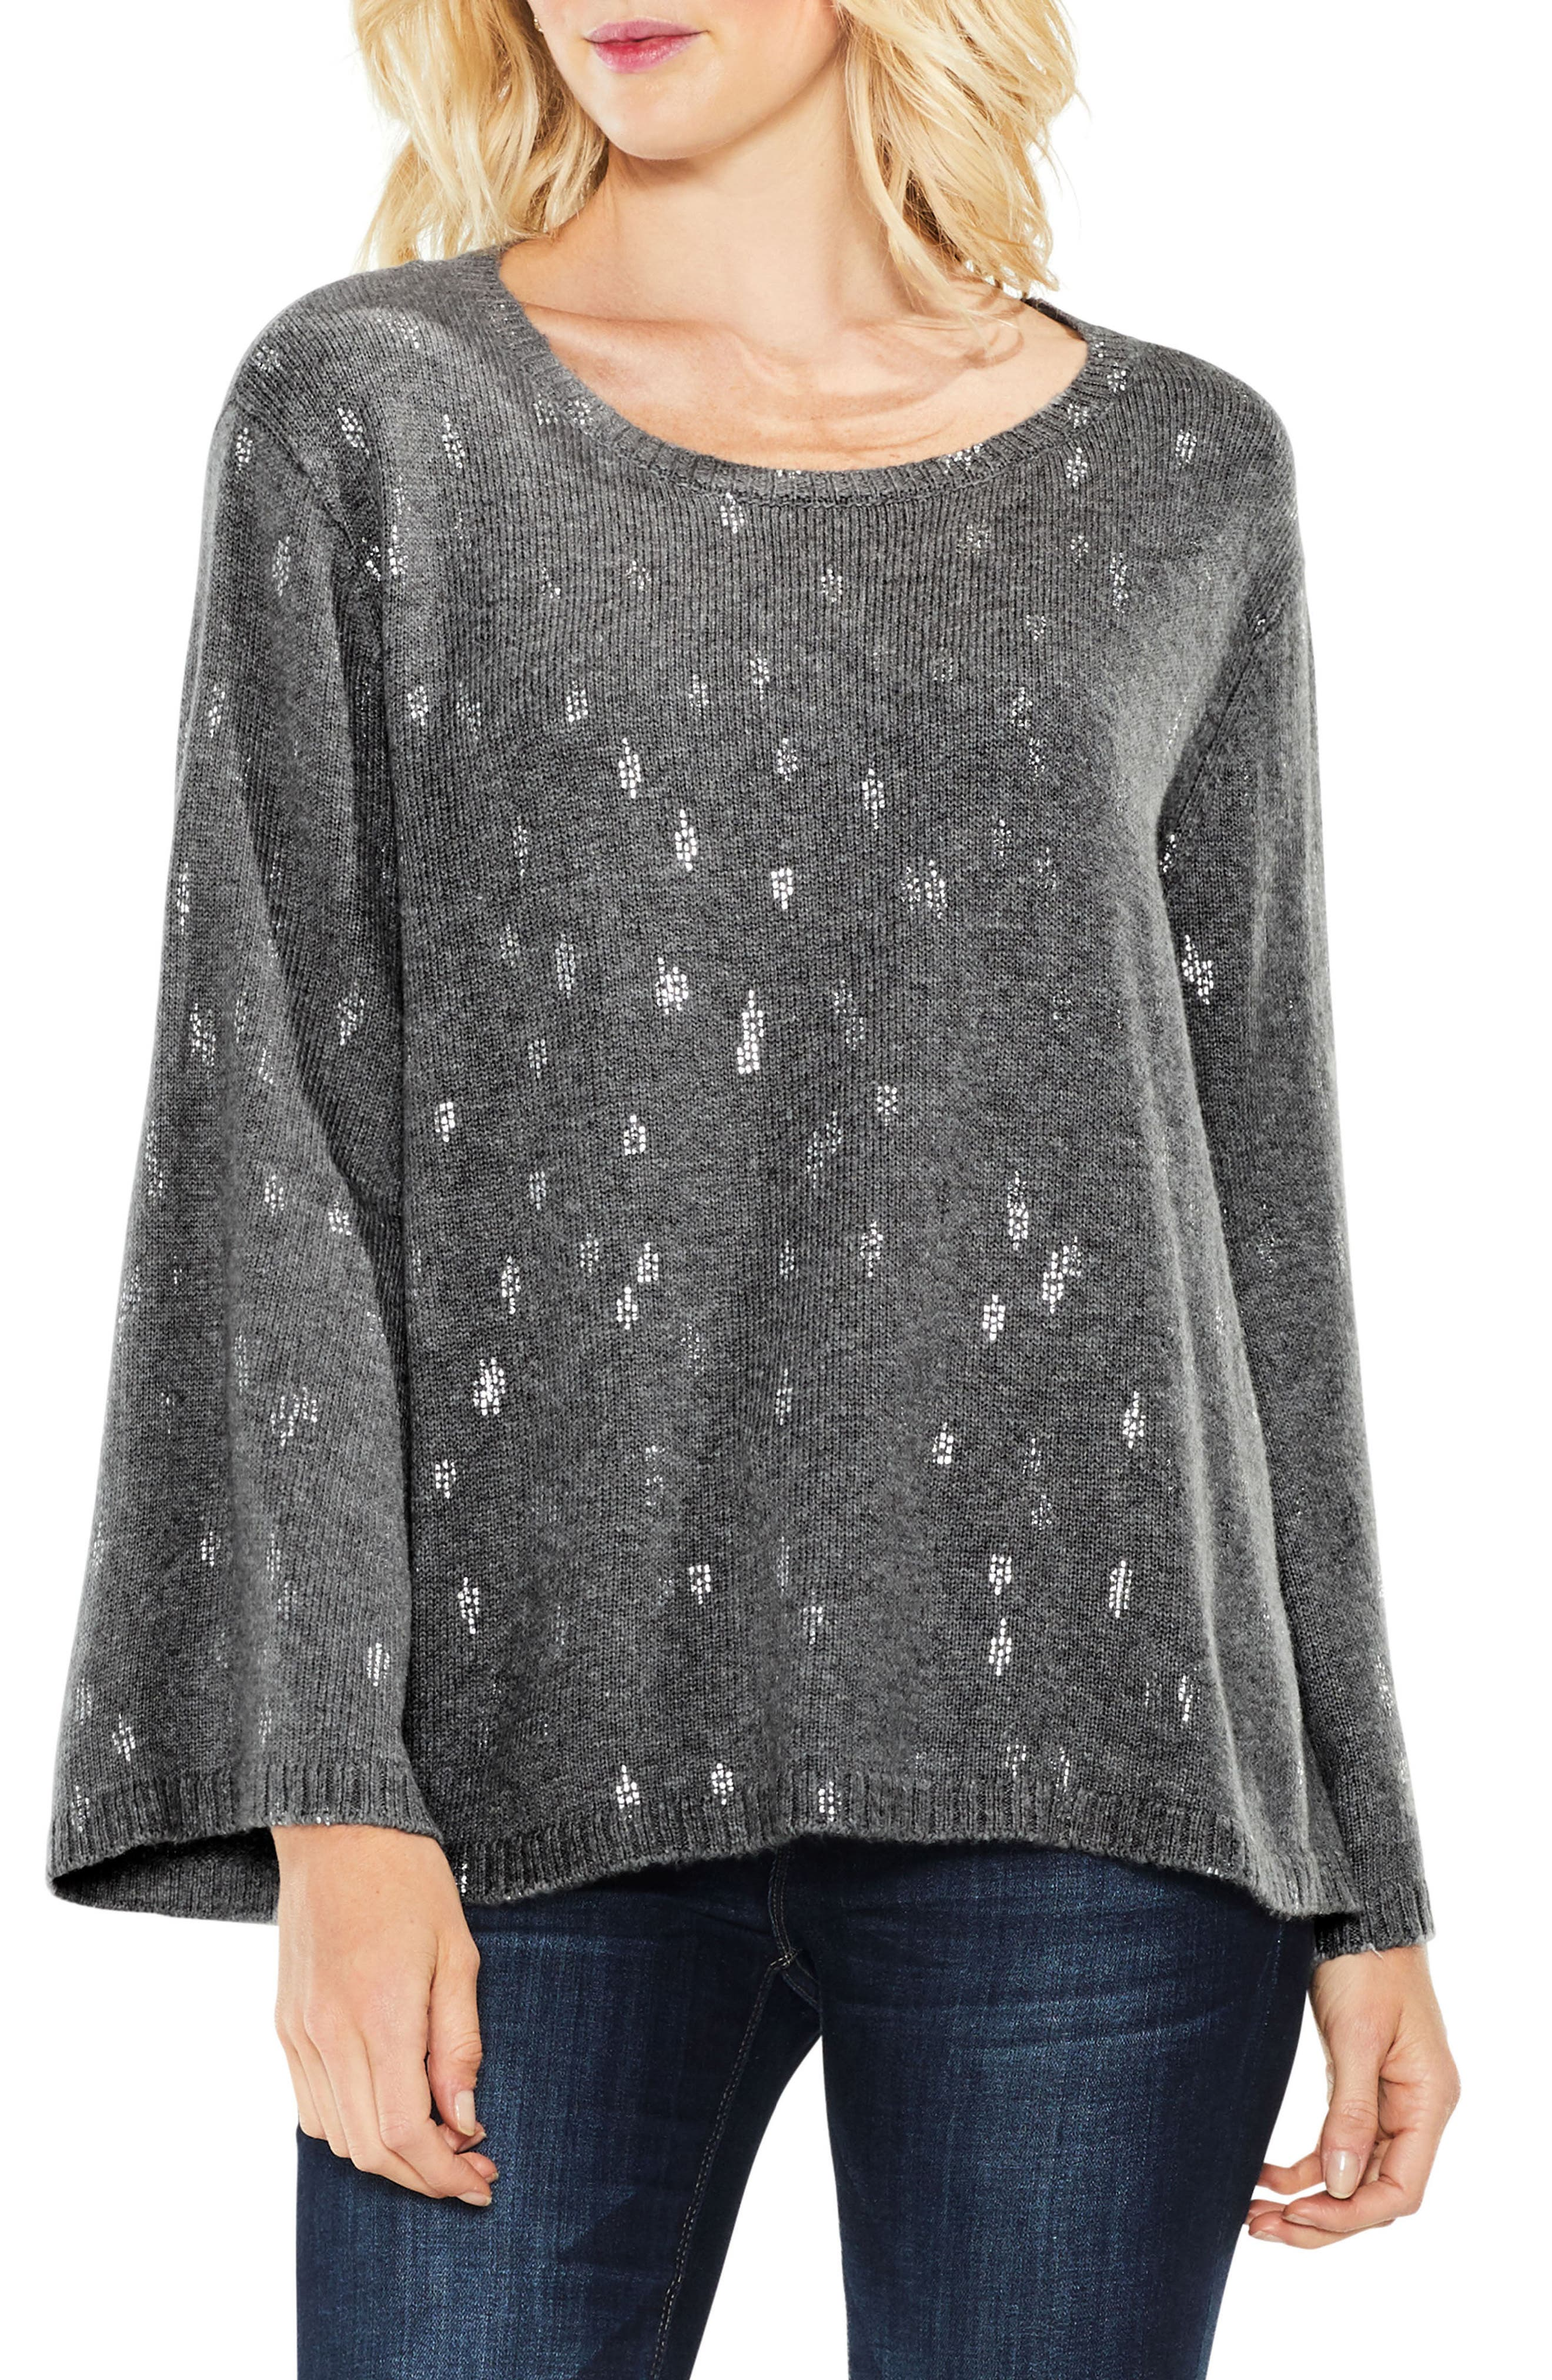 Main Image - Two by Vince Camuto Bell Sleeve Foil Print Sweater